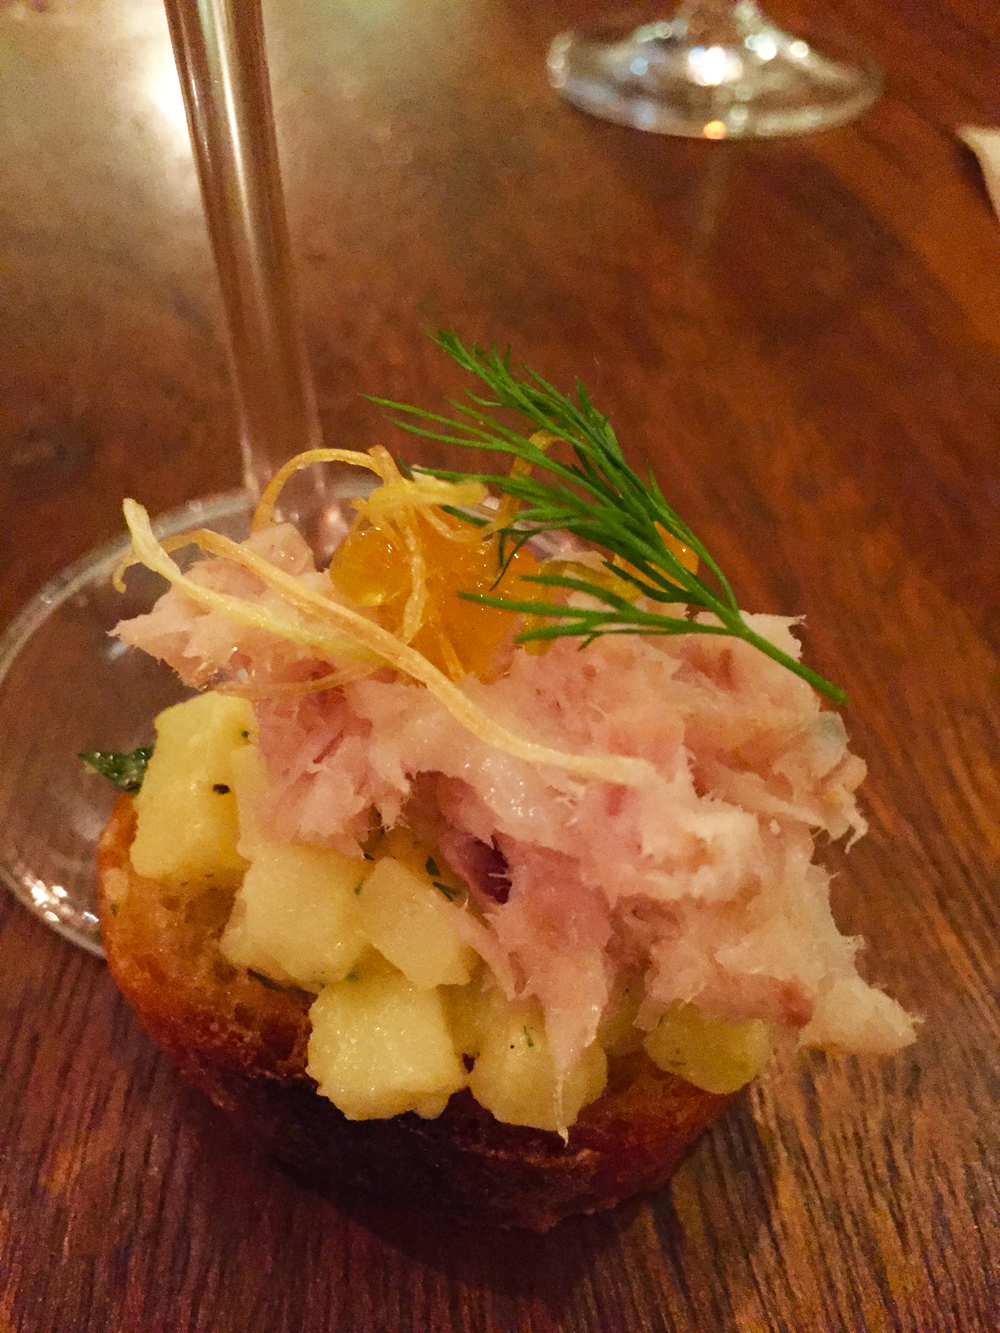 Smoked yellow tail with potato salad and dill  amuse bouche